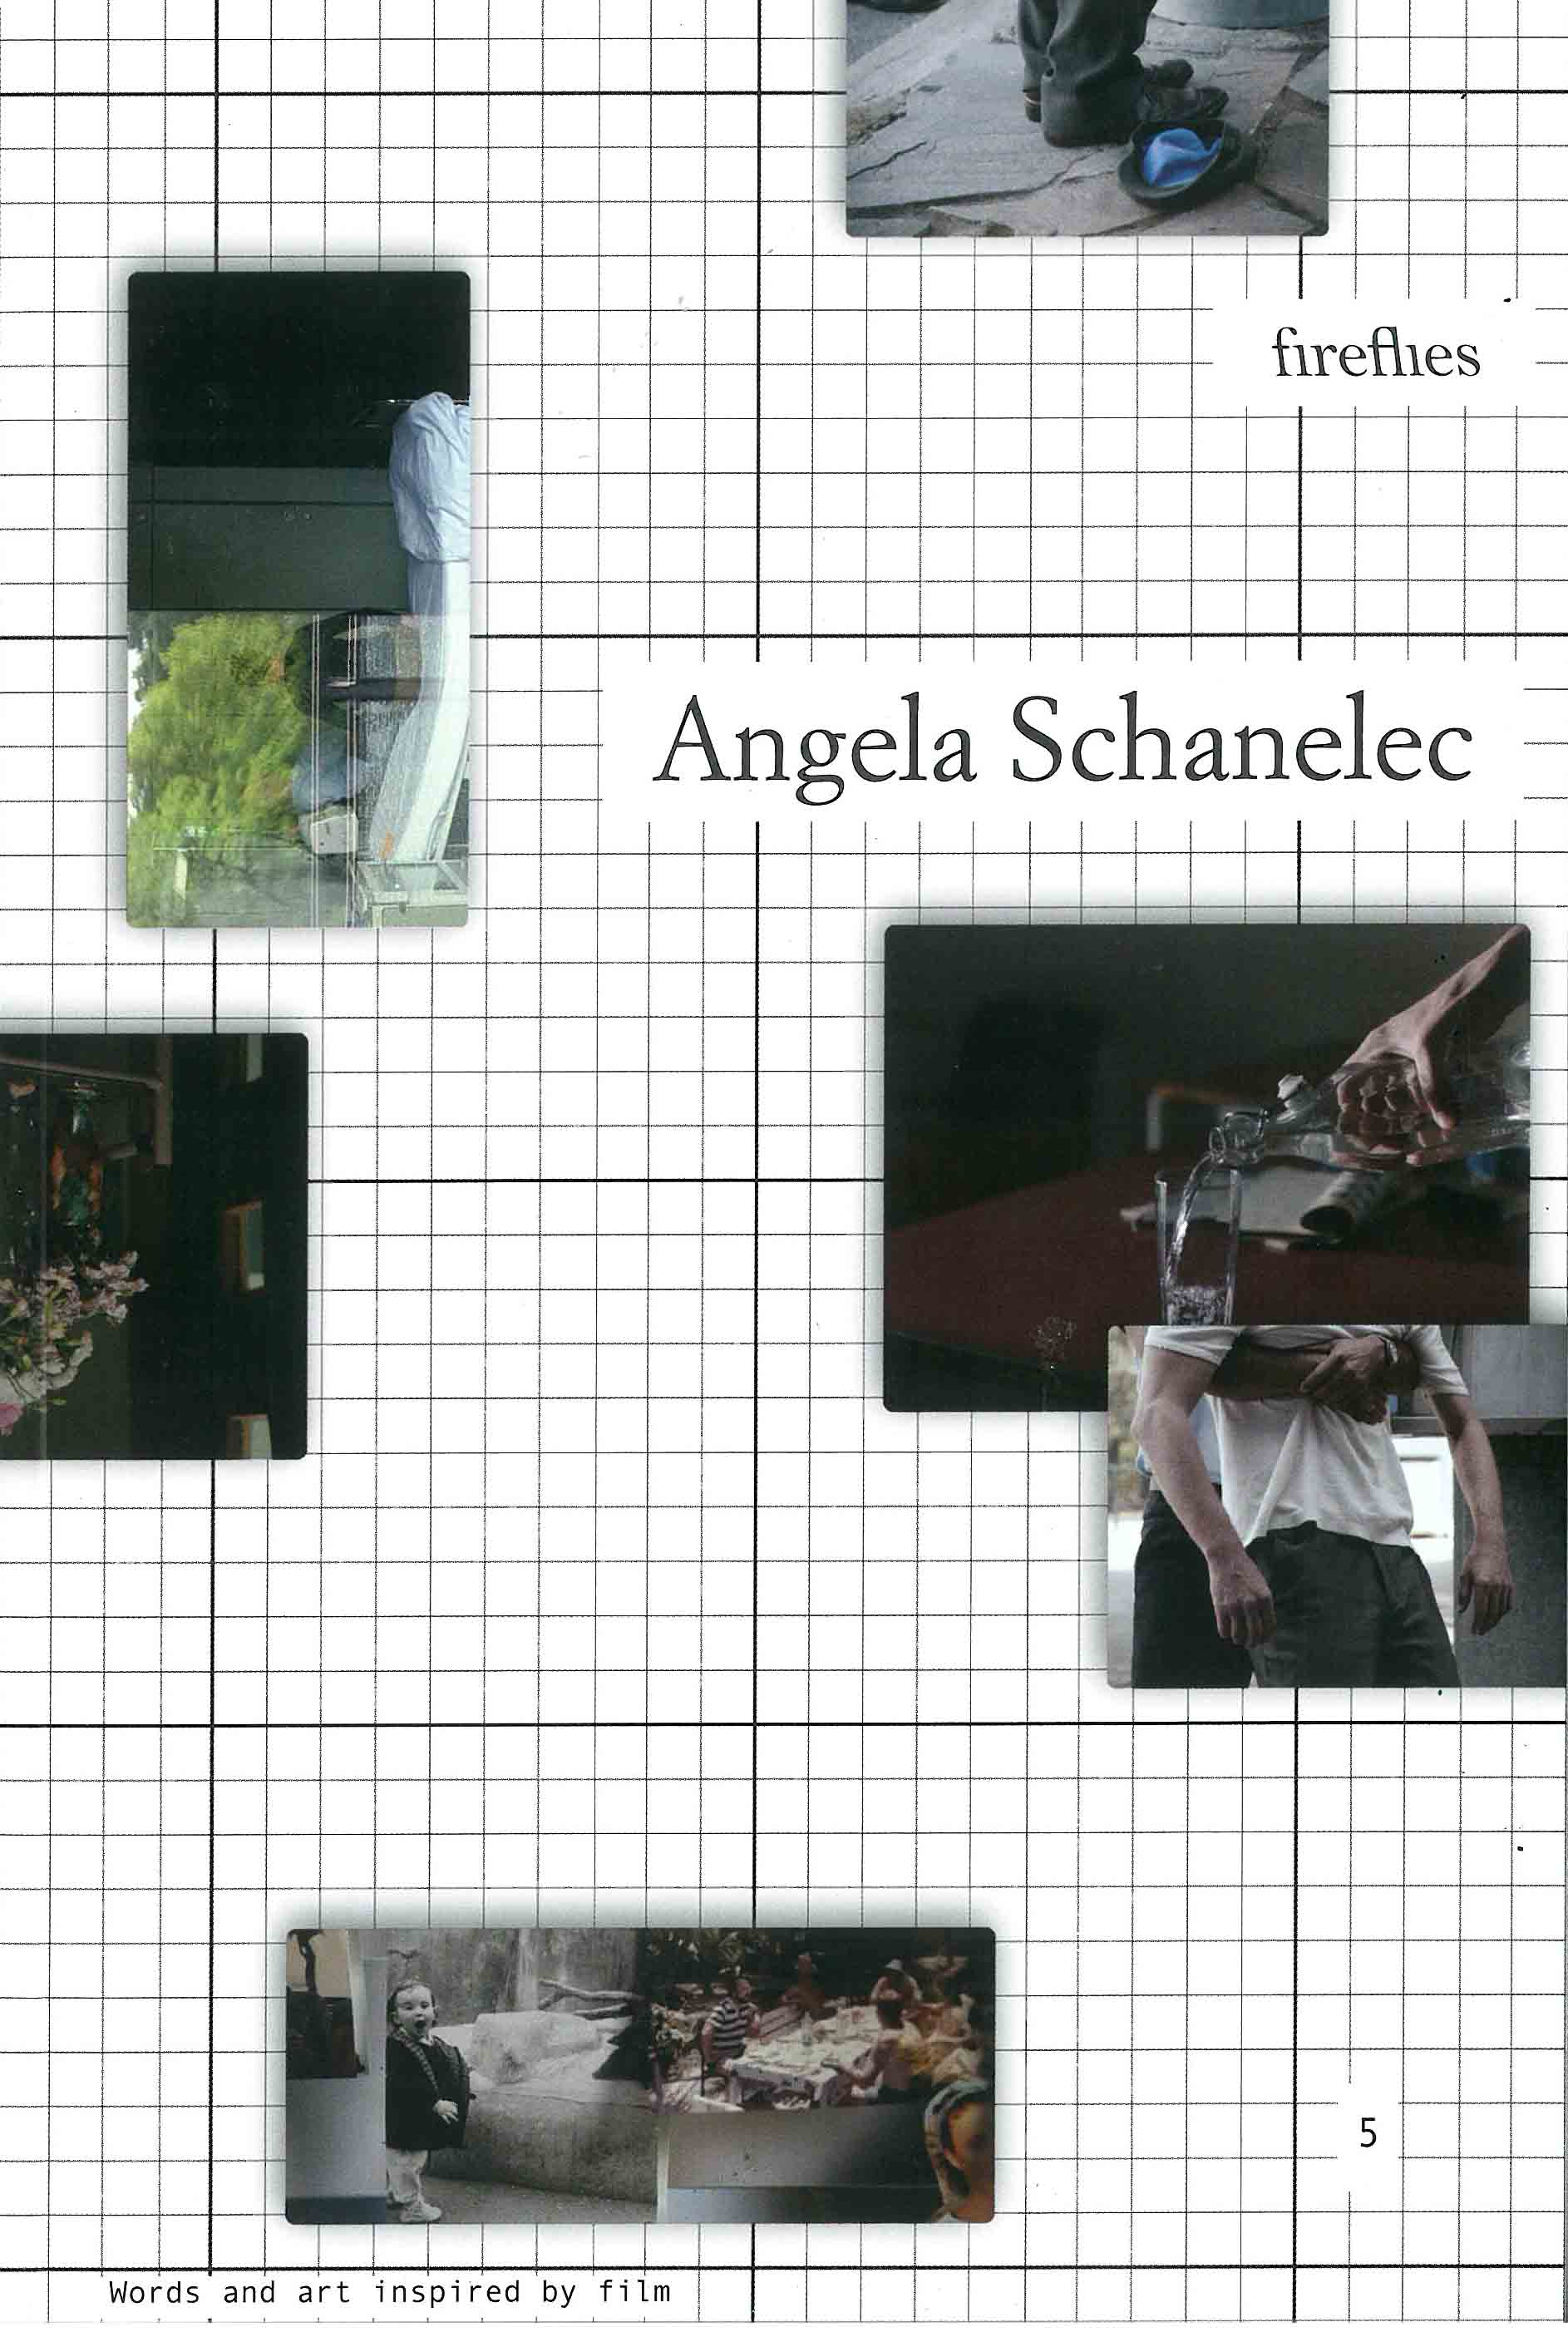 Buy Fireflies Issue 5 - Agnès Varda / Angela Schanelec